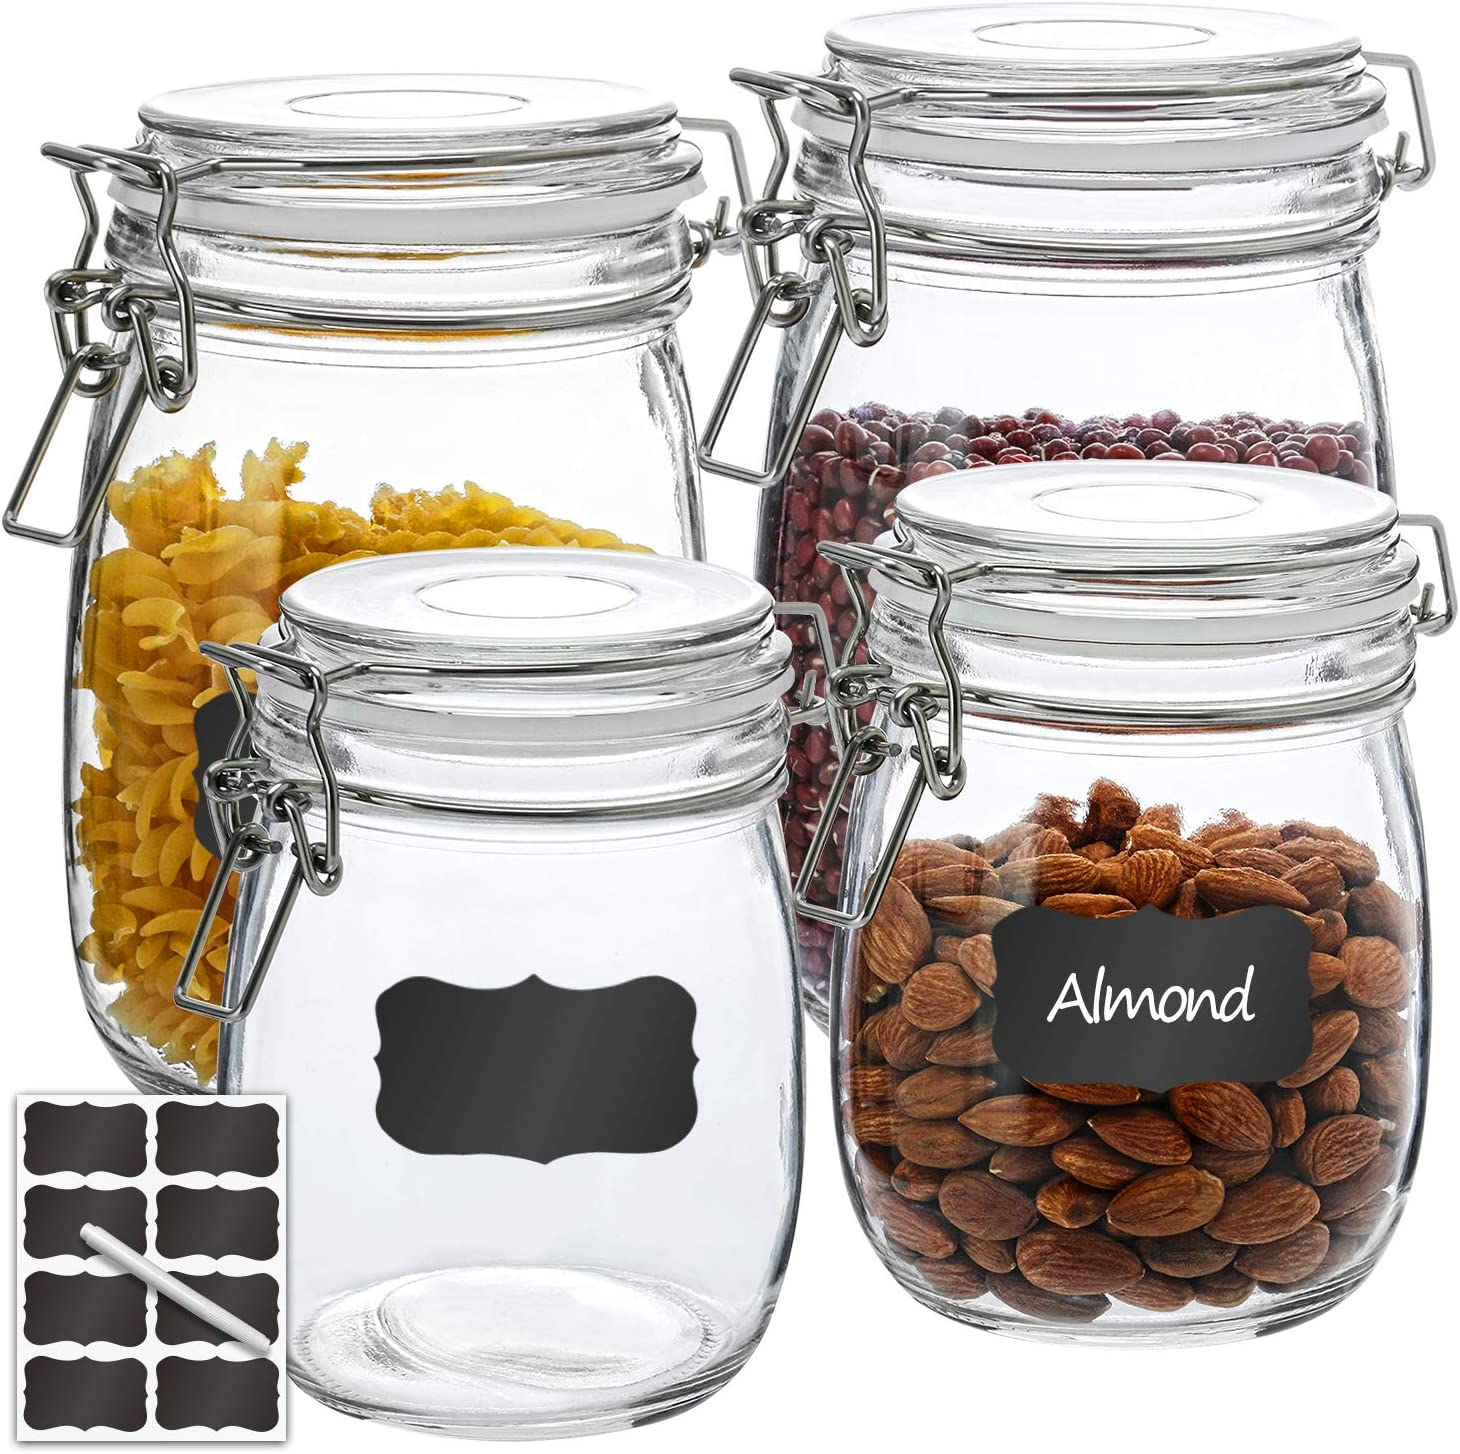 Airtight Glass Jars, RAZCC 2 PACK 27 OZ & 2 PACK 32 OZ Round Glass Canister Set with Wide Mouth Leak-Proof Fit for Food Storage, Canning, Cereal Container